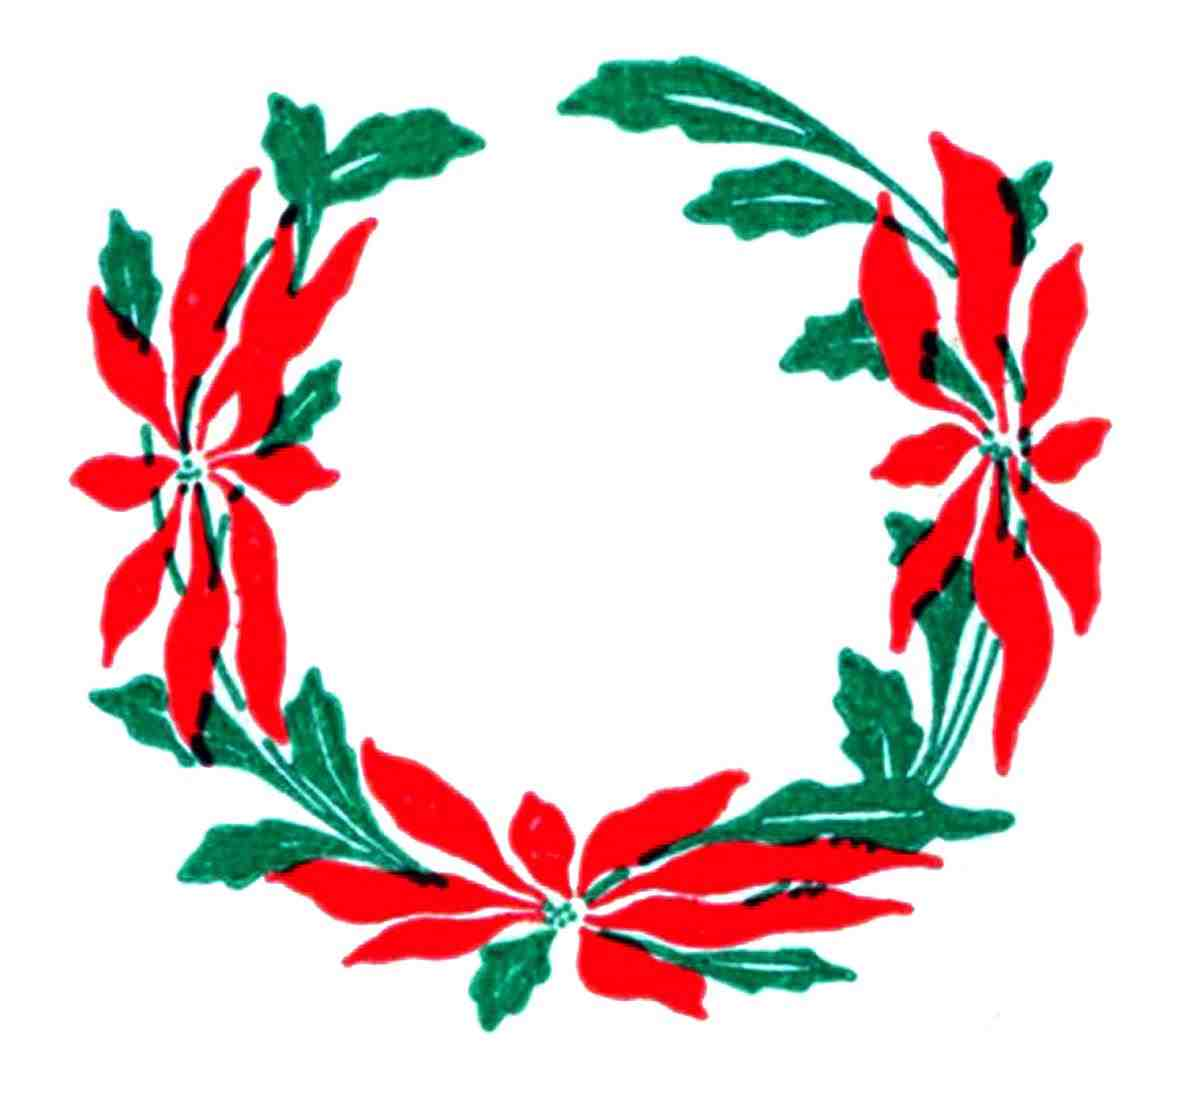 1185x1110 Floral Garland Design Elements Floral Christmas Poinsettias